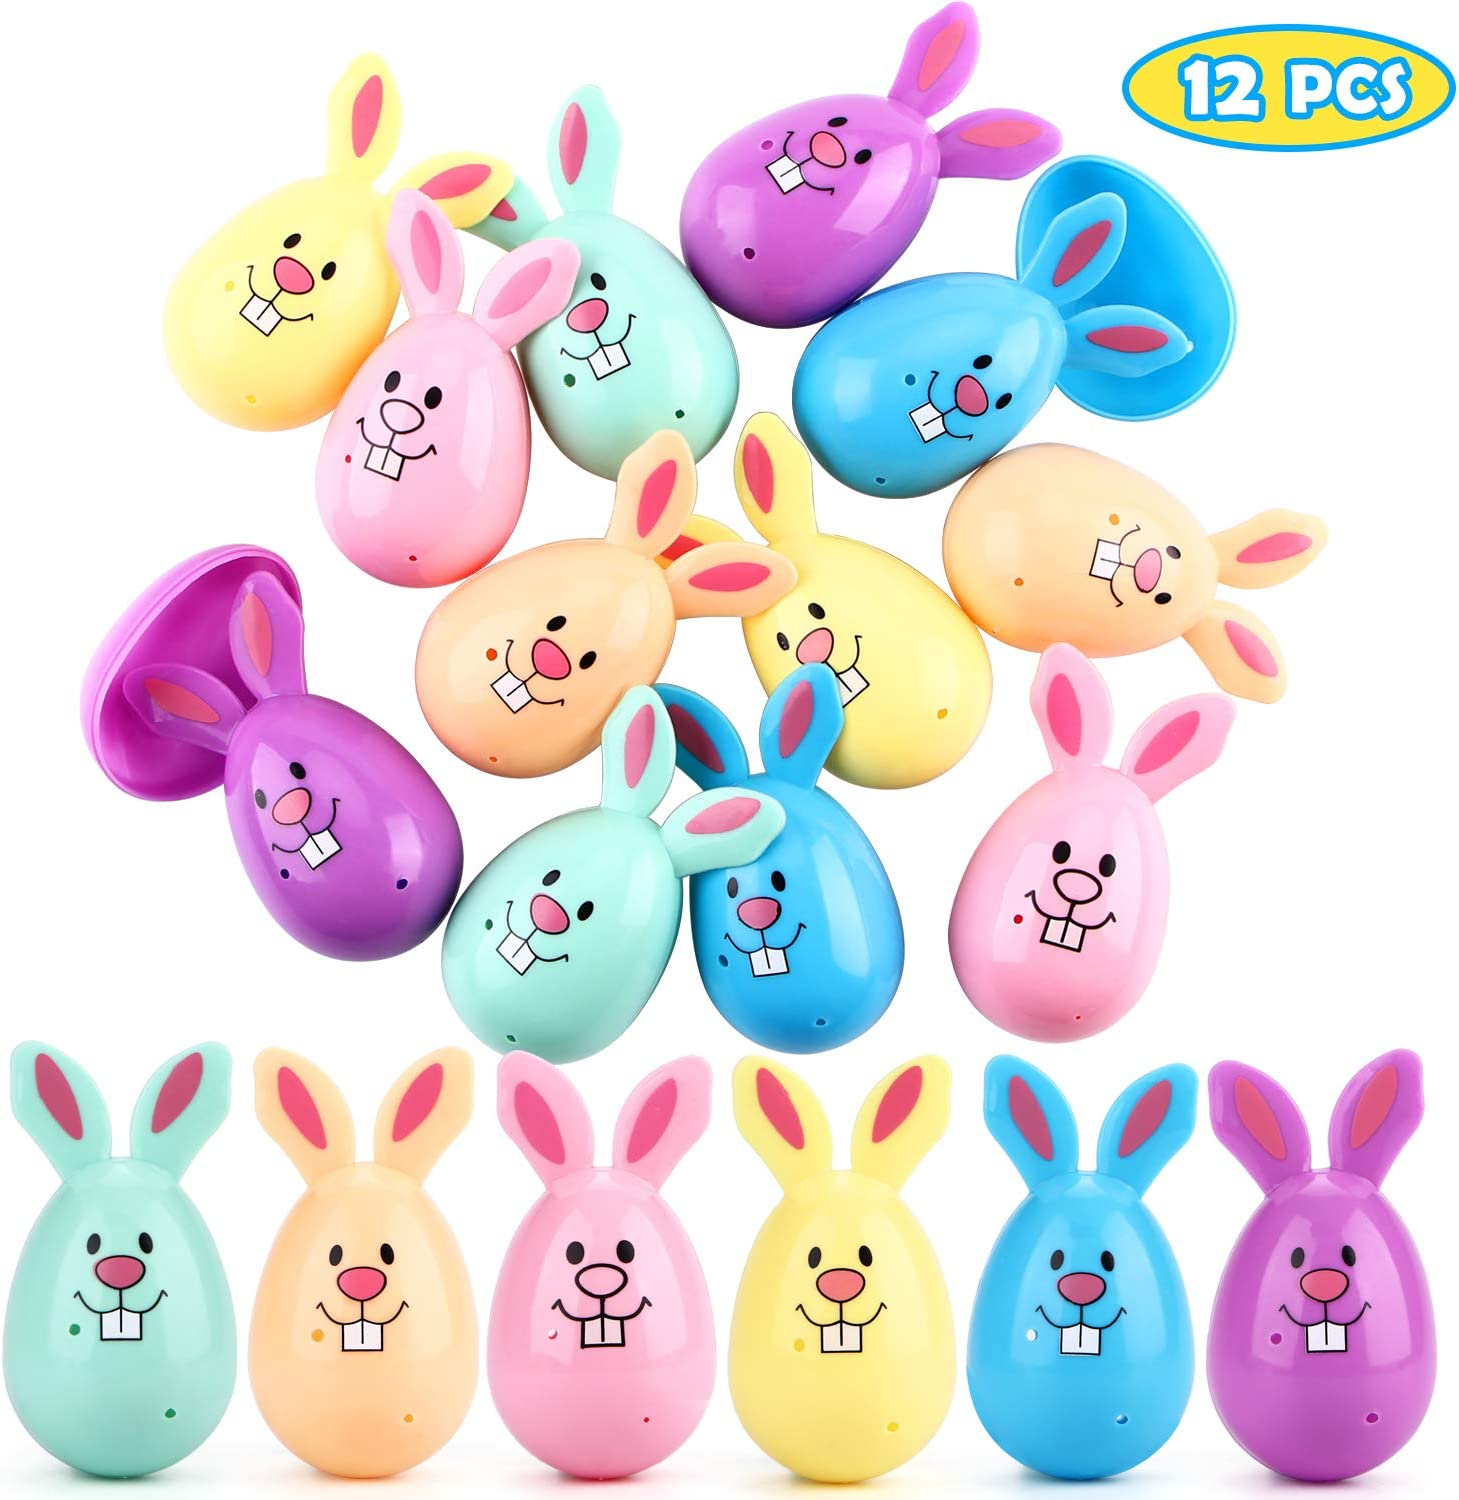 for Easter Hunt,Basket Stuffers Fillers,Classroom Prize Supplies,Filling Treats and Party Favor UFUNGA 12 PCS Easter Eggs Pastel Bunny Shaped Fillers Plastic Easter Eggs